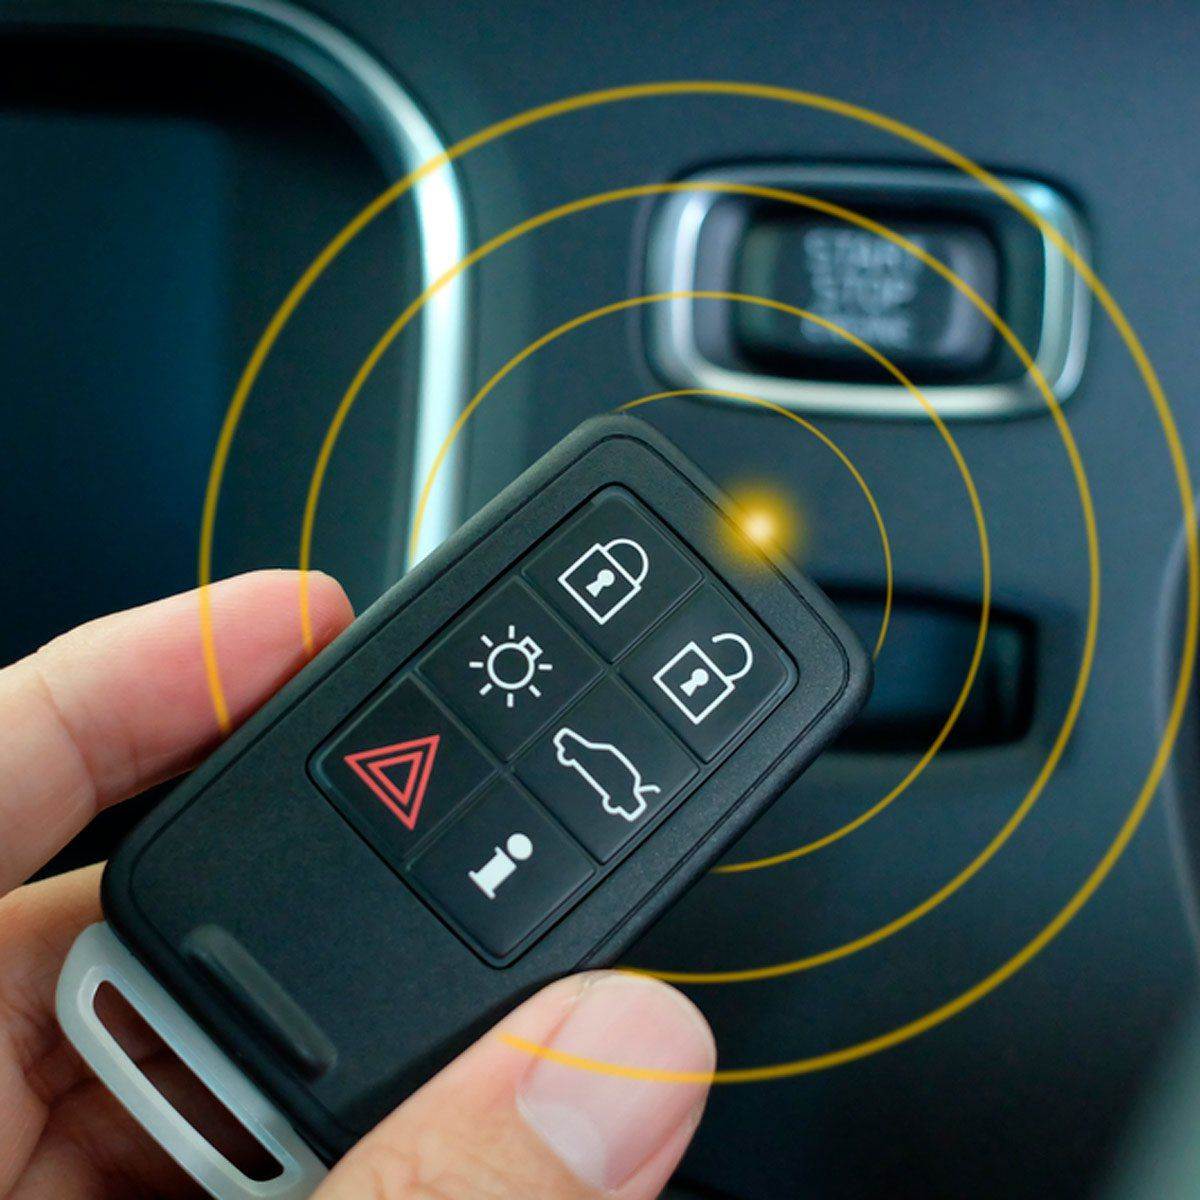 Why Keyless Entry Car Systems Are Getting Stolen More Frequently